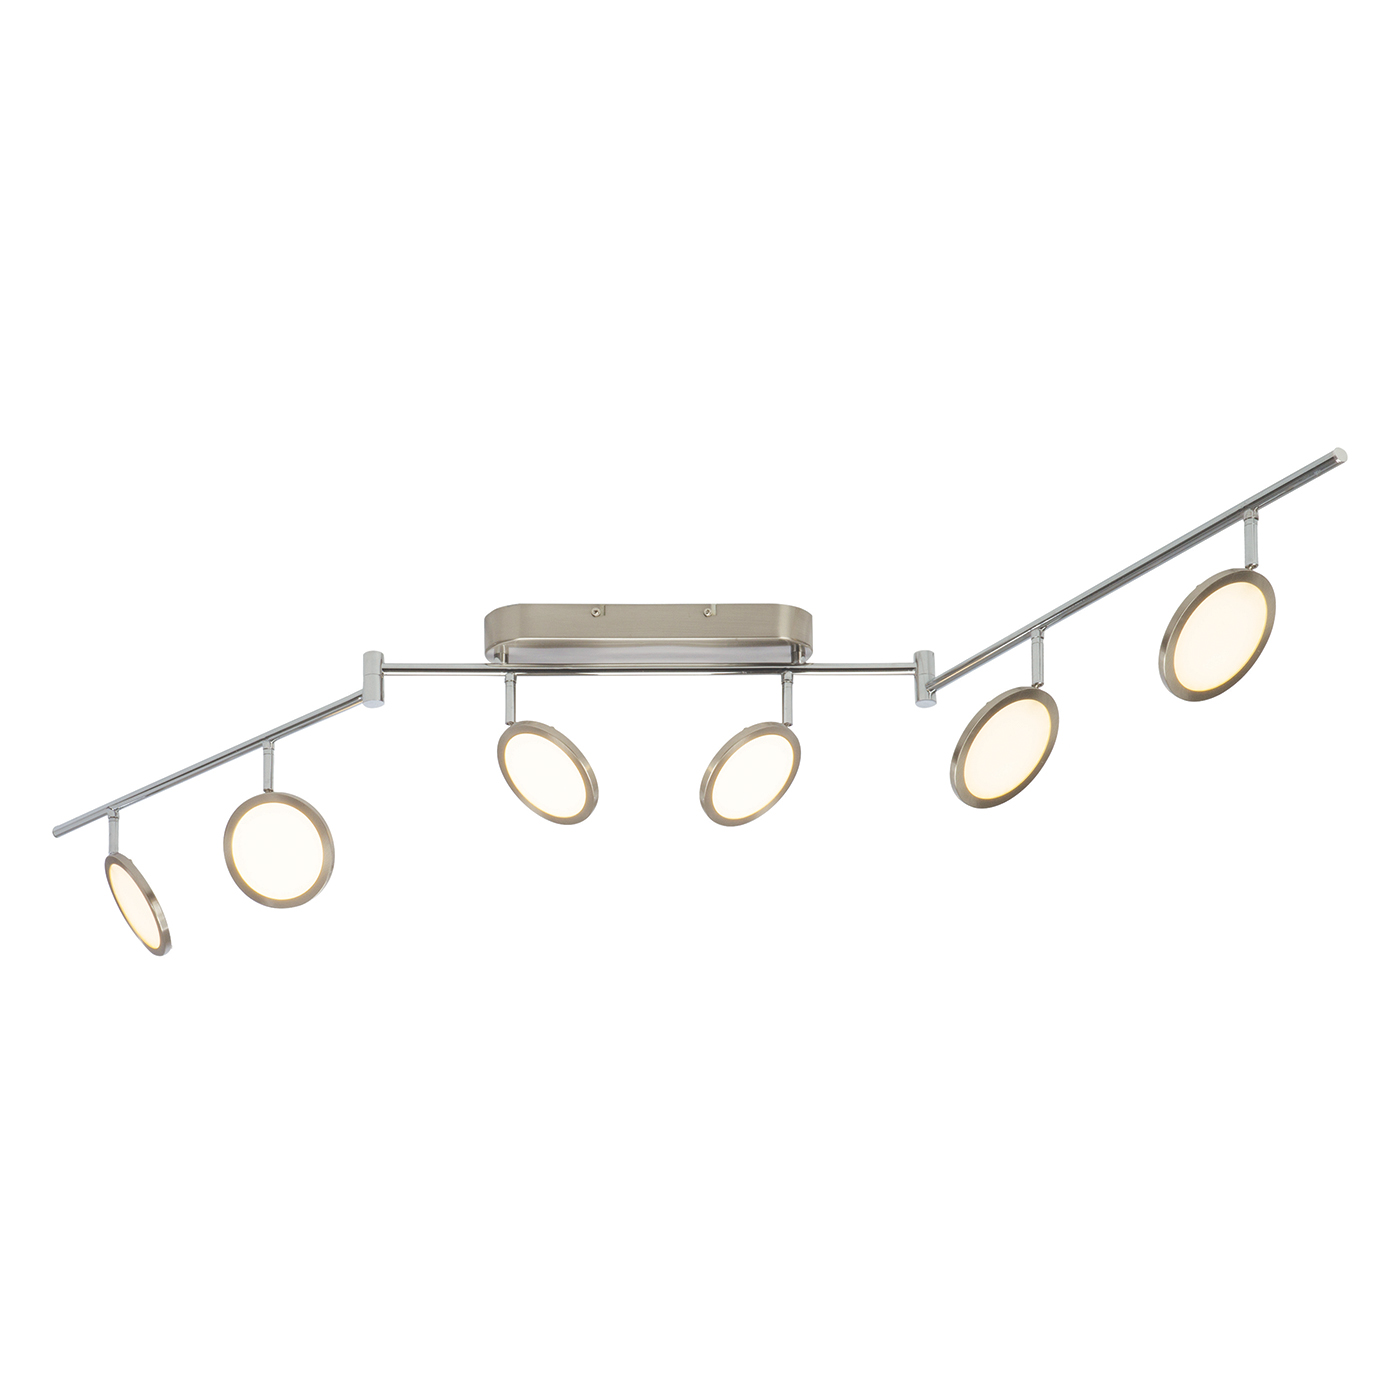 Endon Pluto ceiling spotlight folding bar 6x 5W Satin nickel effect opal plastic